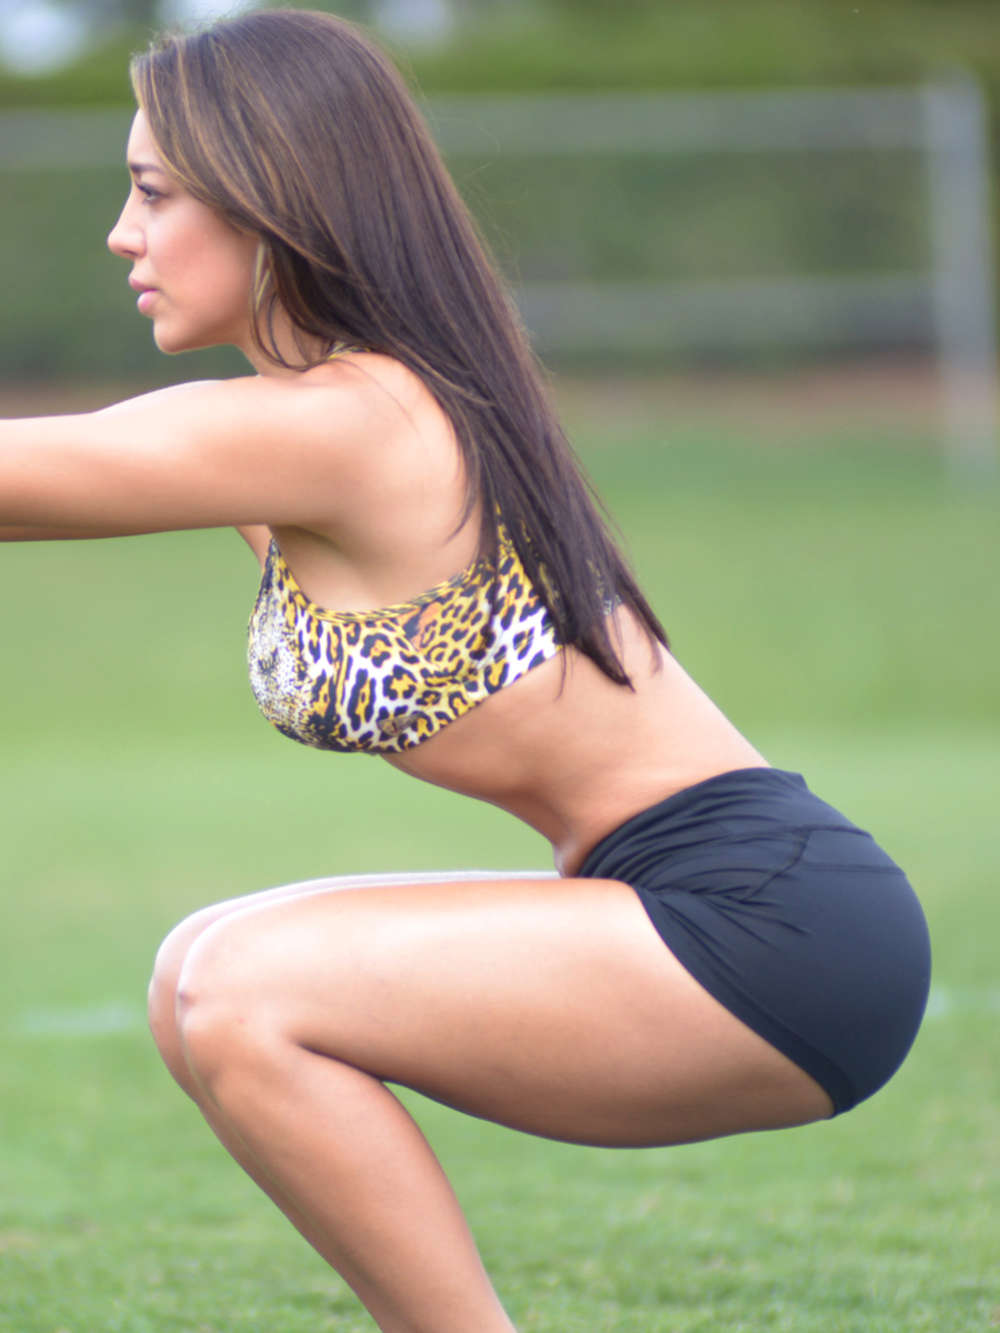 Andrea-Calle-Working-Out-Miami-Park-Kanoni-6